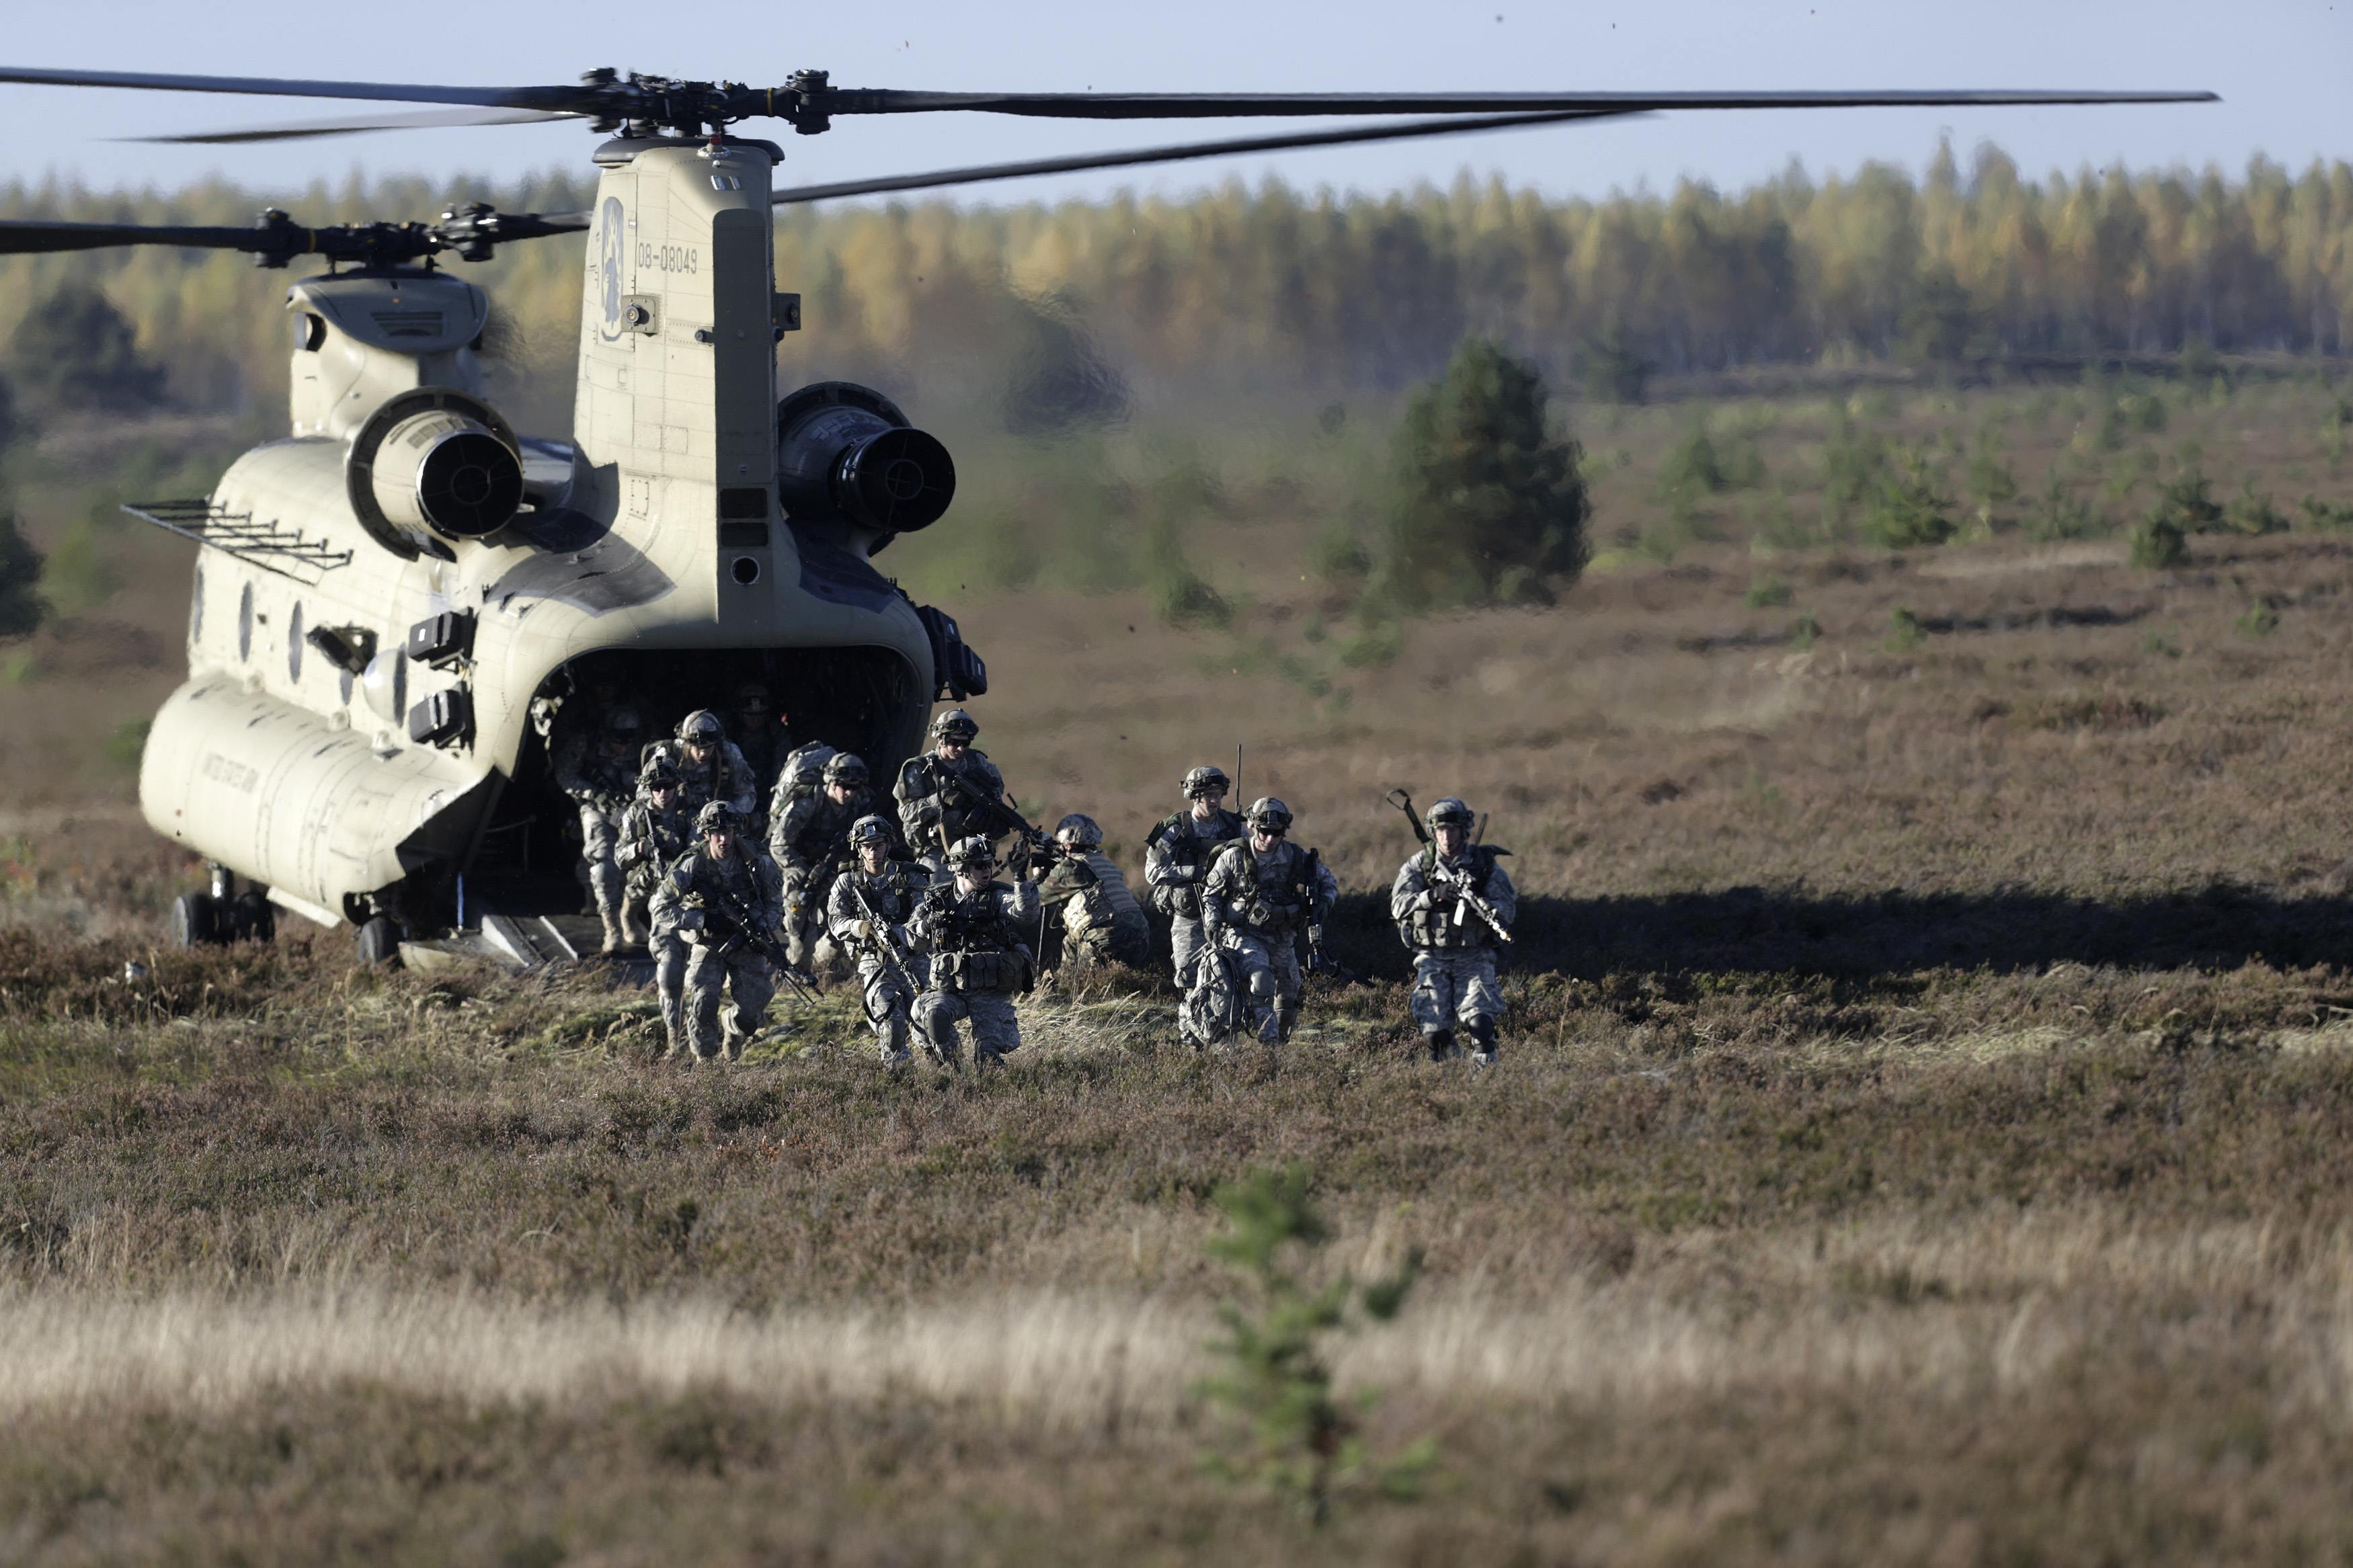 nato and russia relationship must be redefined home